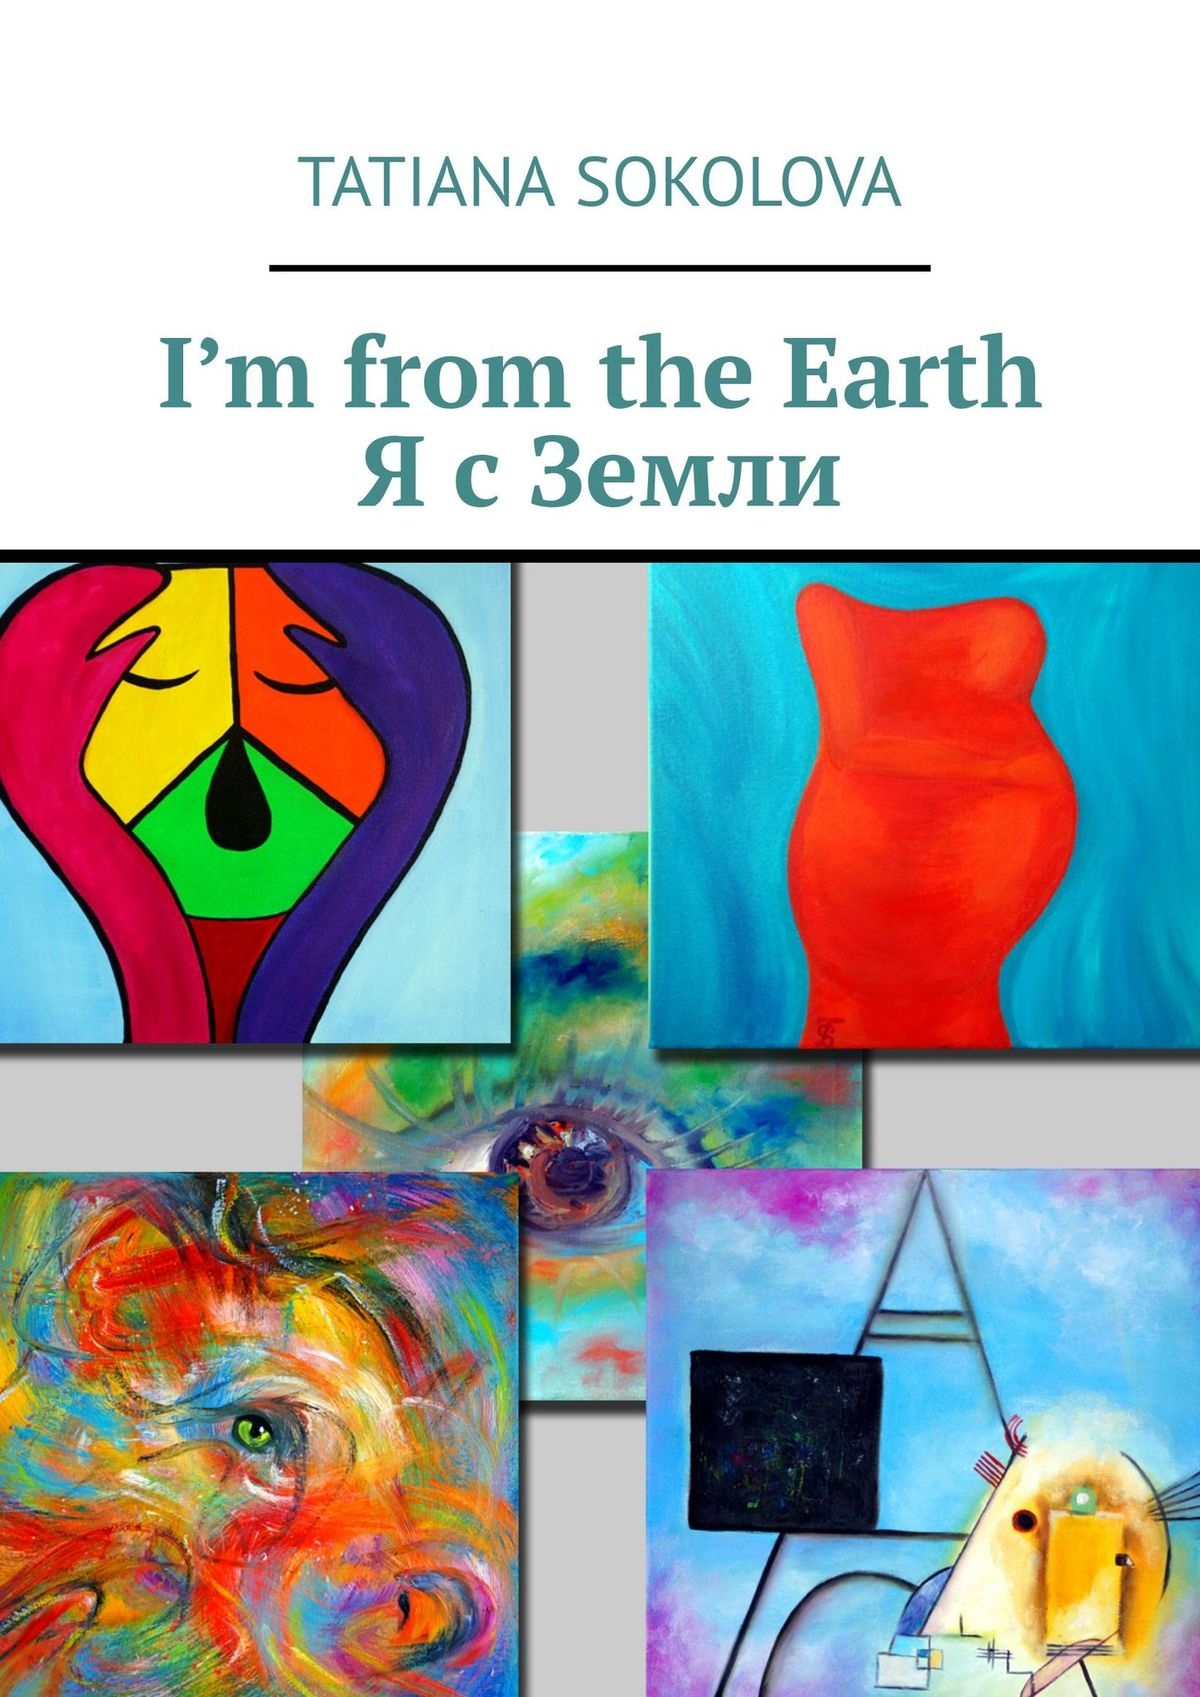 Татьяна Соколова I'm from Earth. Я сЗемли 5pcs lot free shipping mj15023 mj15023g to 3 new and original goods own stock images not network pictures